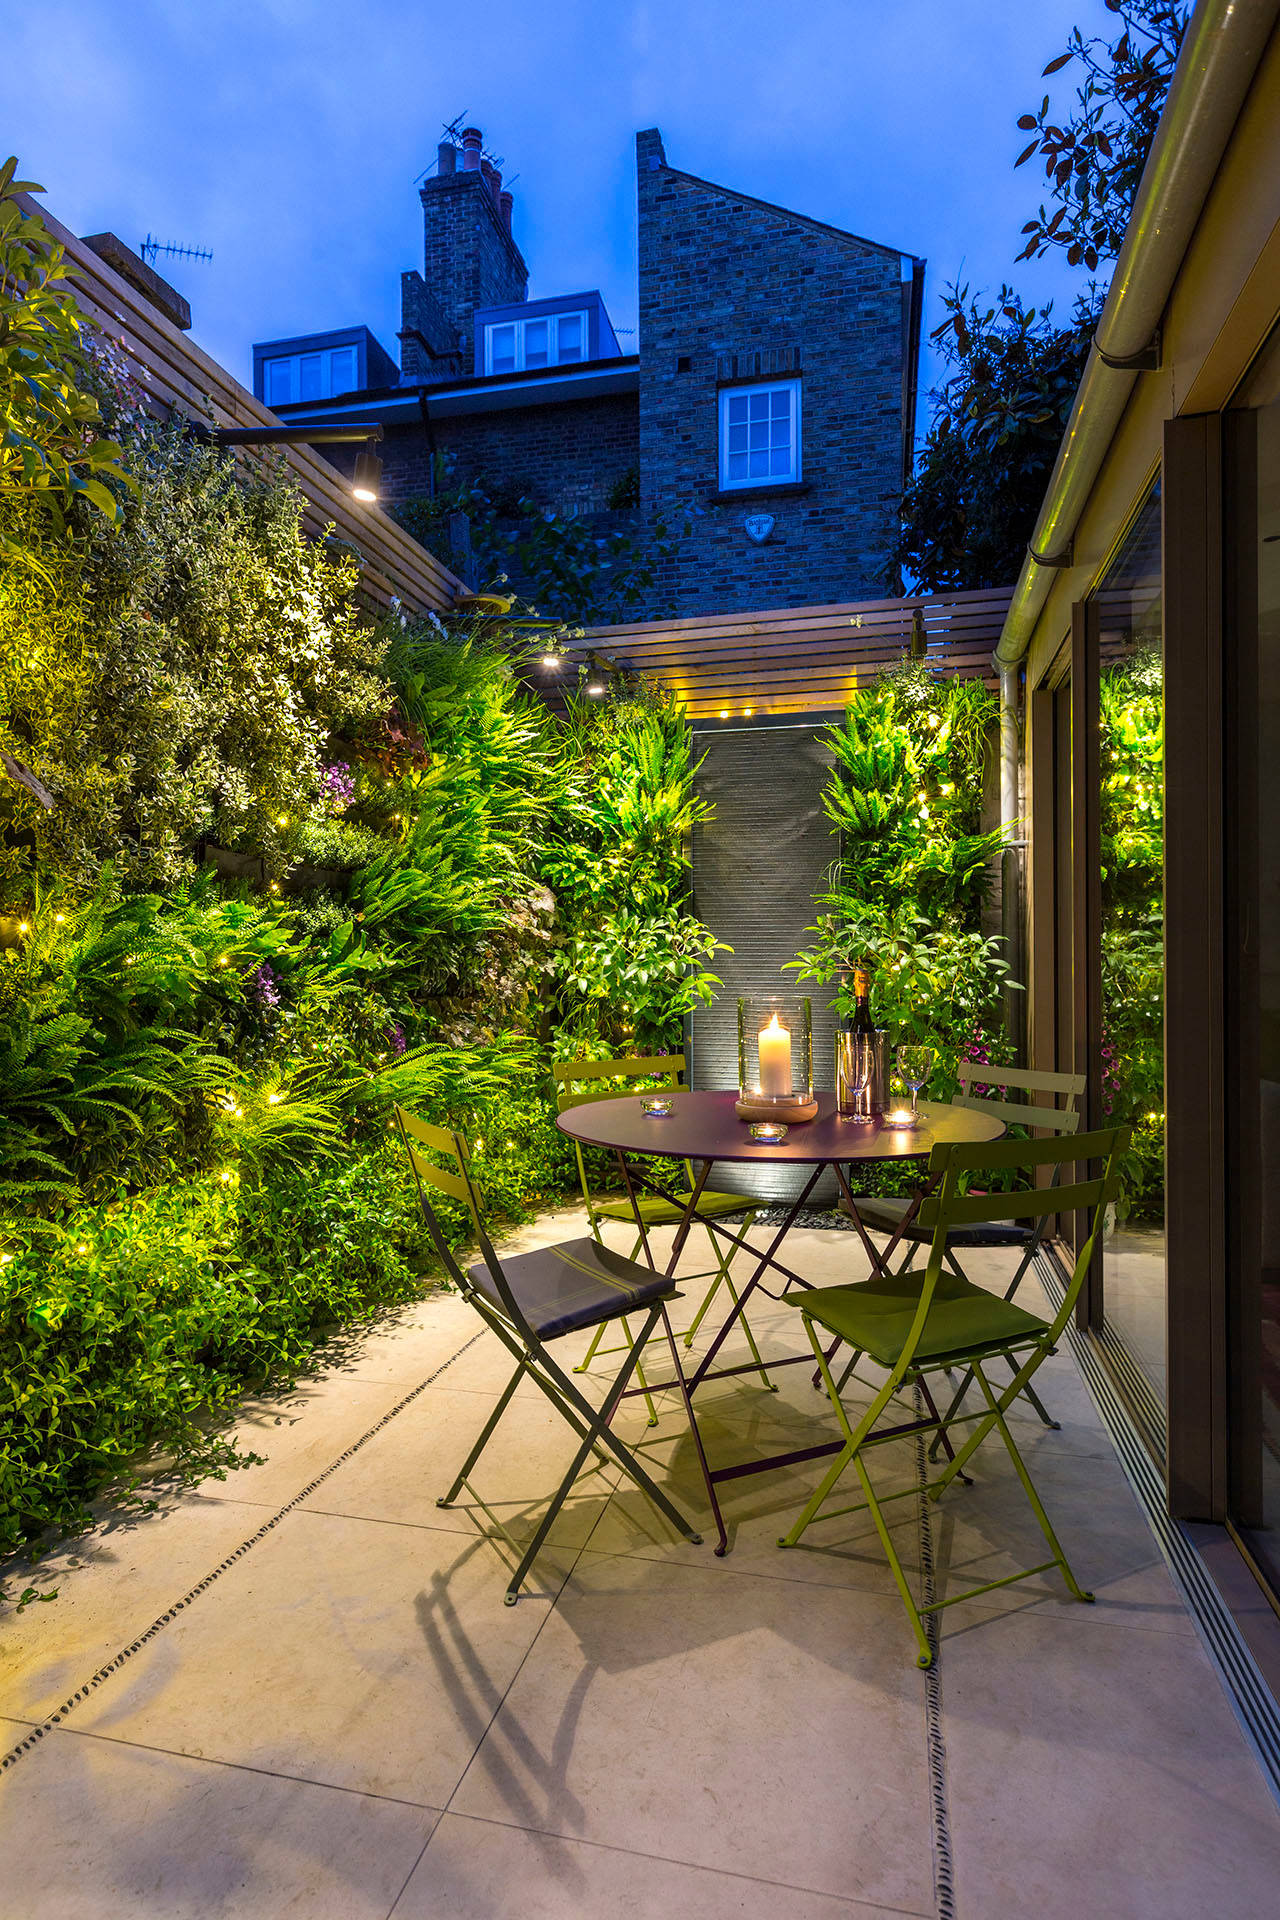 75 Beautiful Small Patio Pictures Ideas March 2021 Houzz